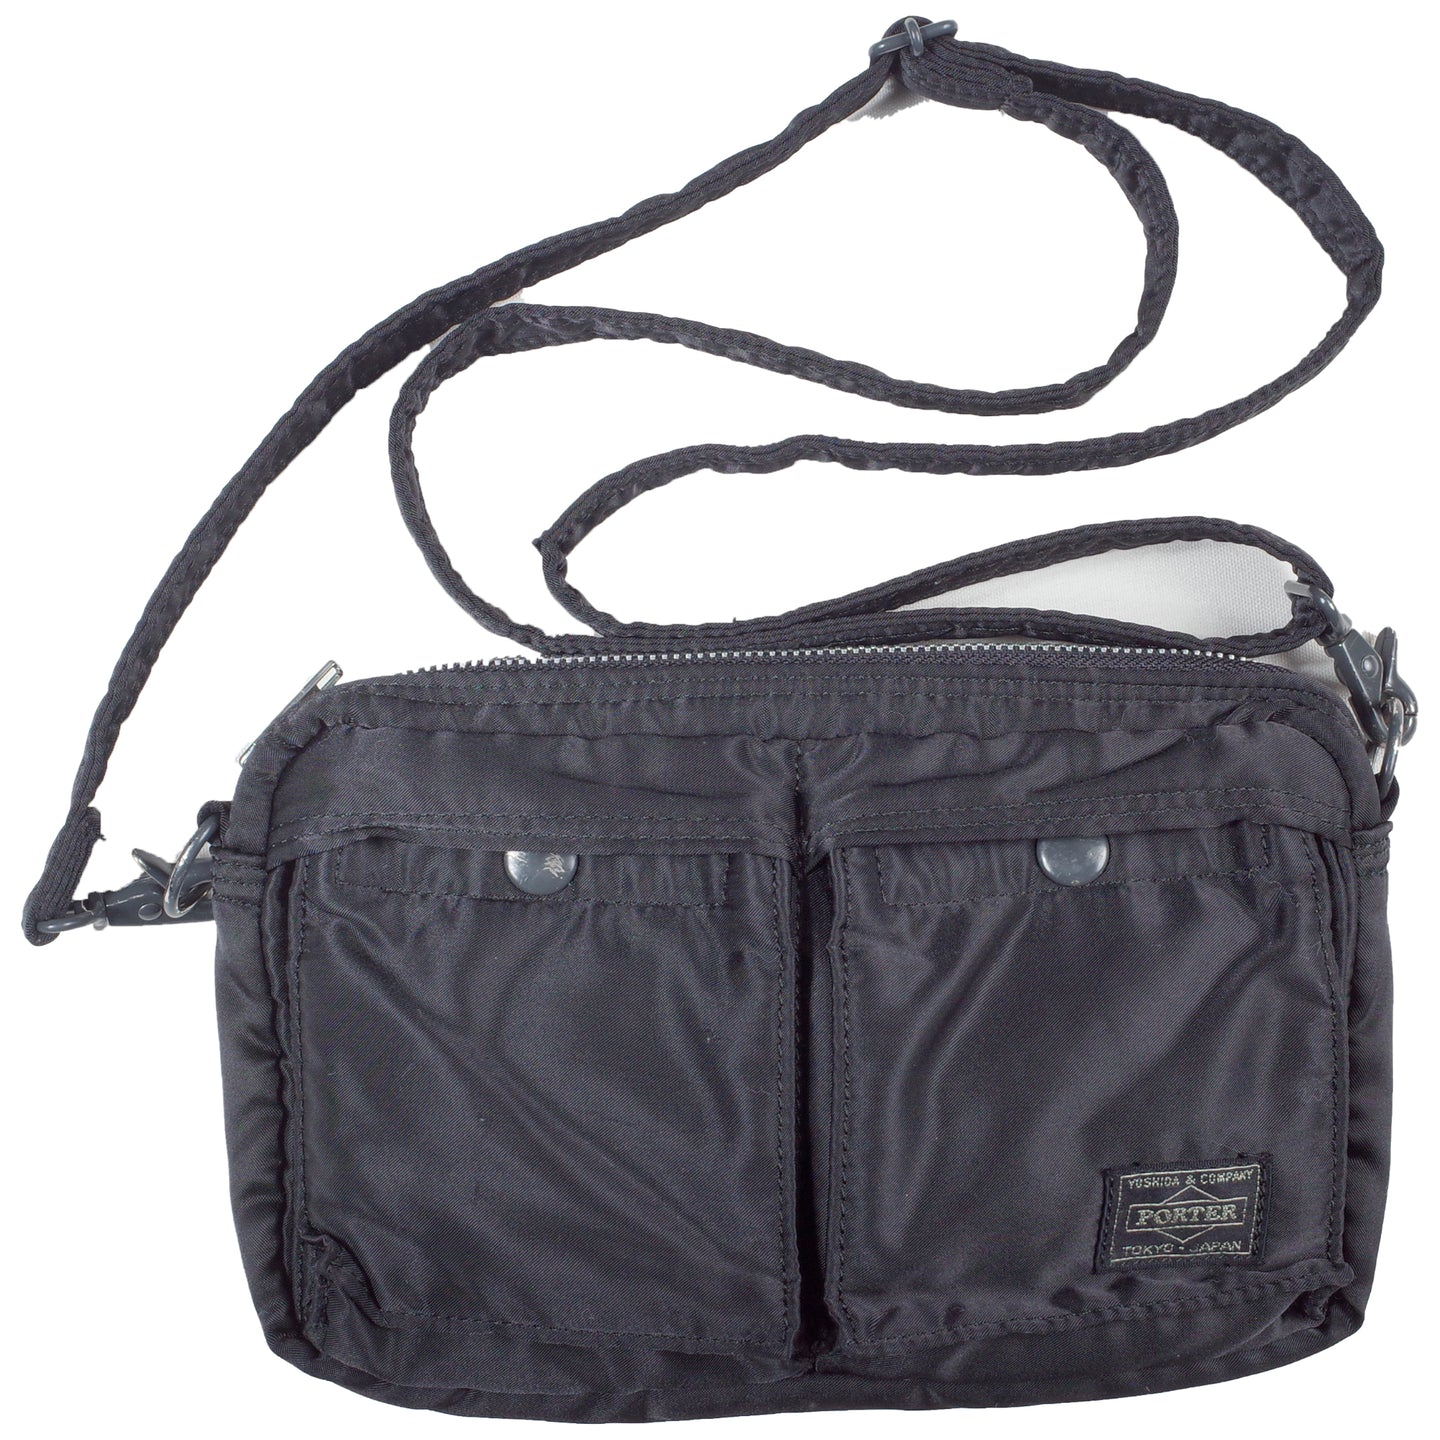 porter tanker shoulder bag small (black) <Br> size os